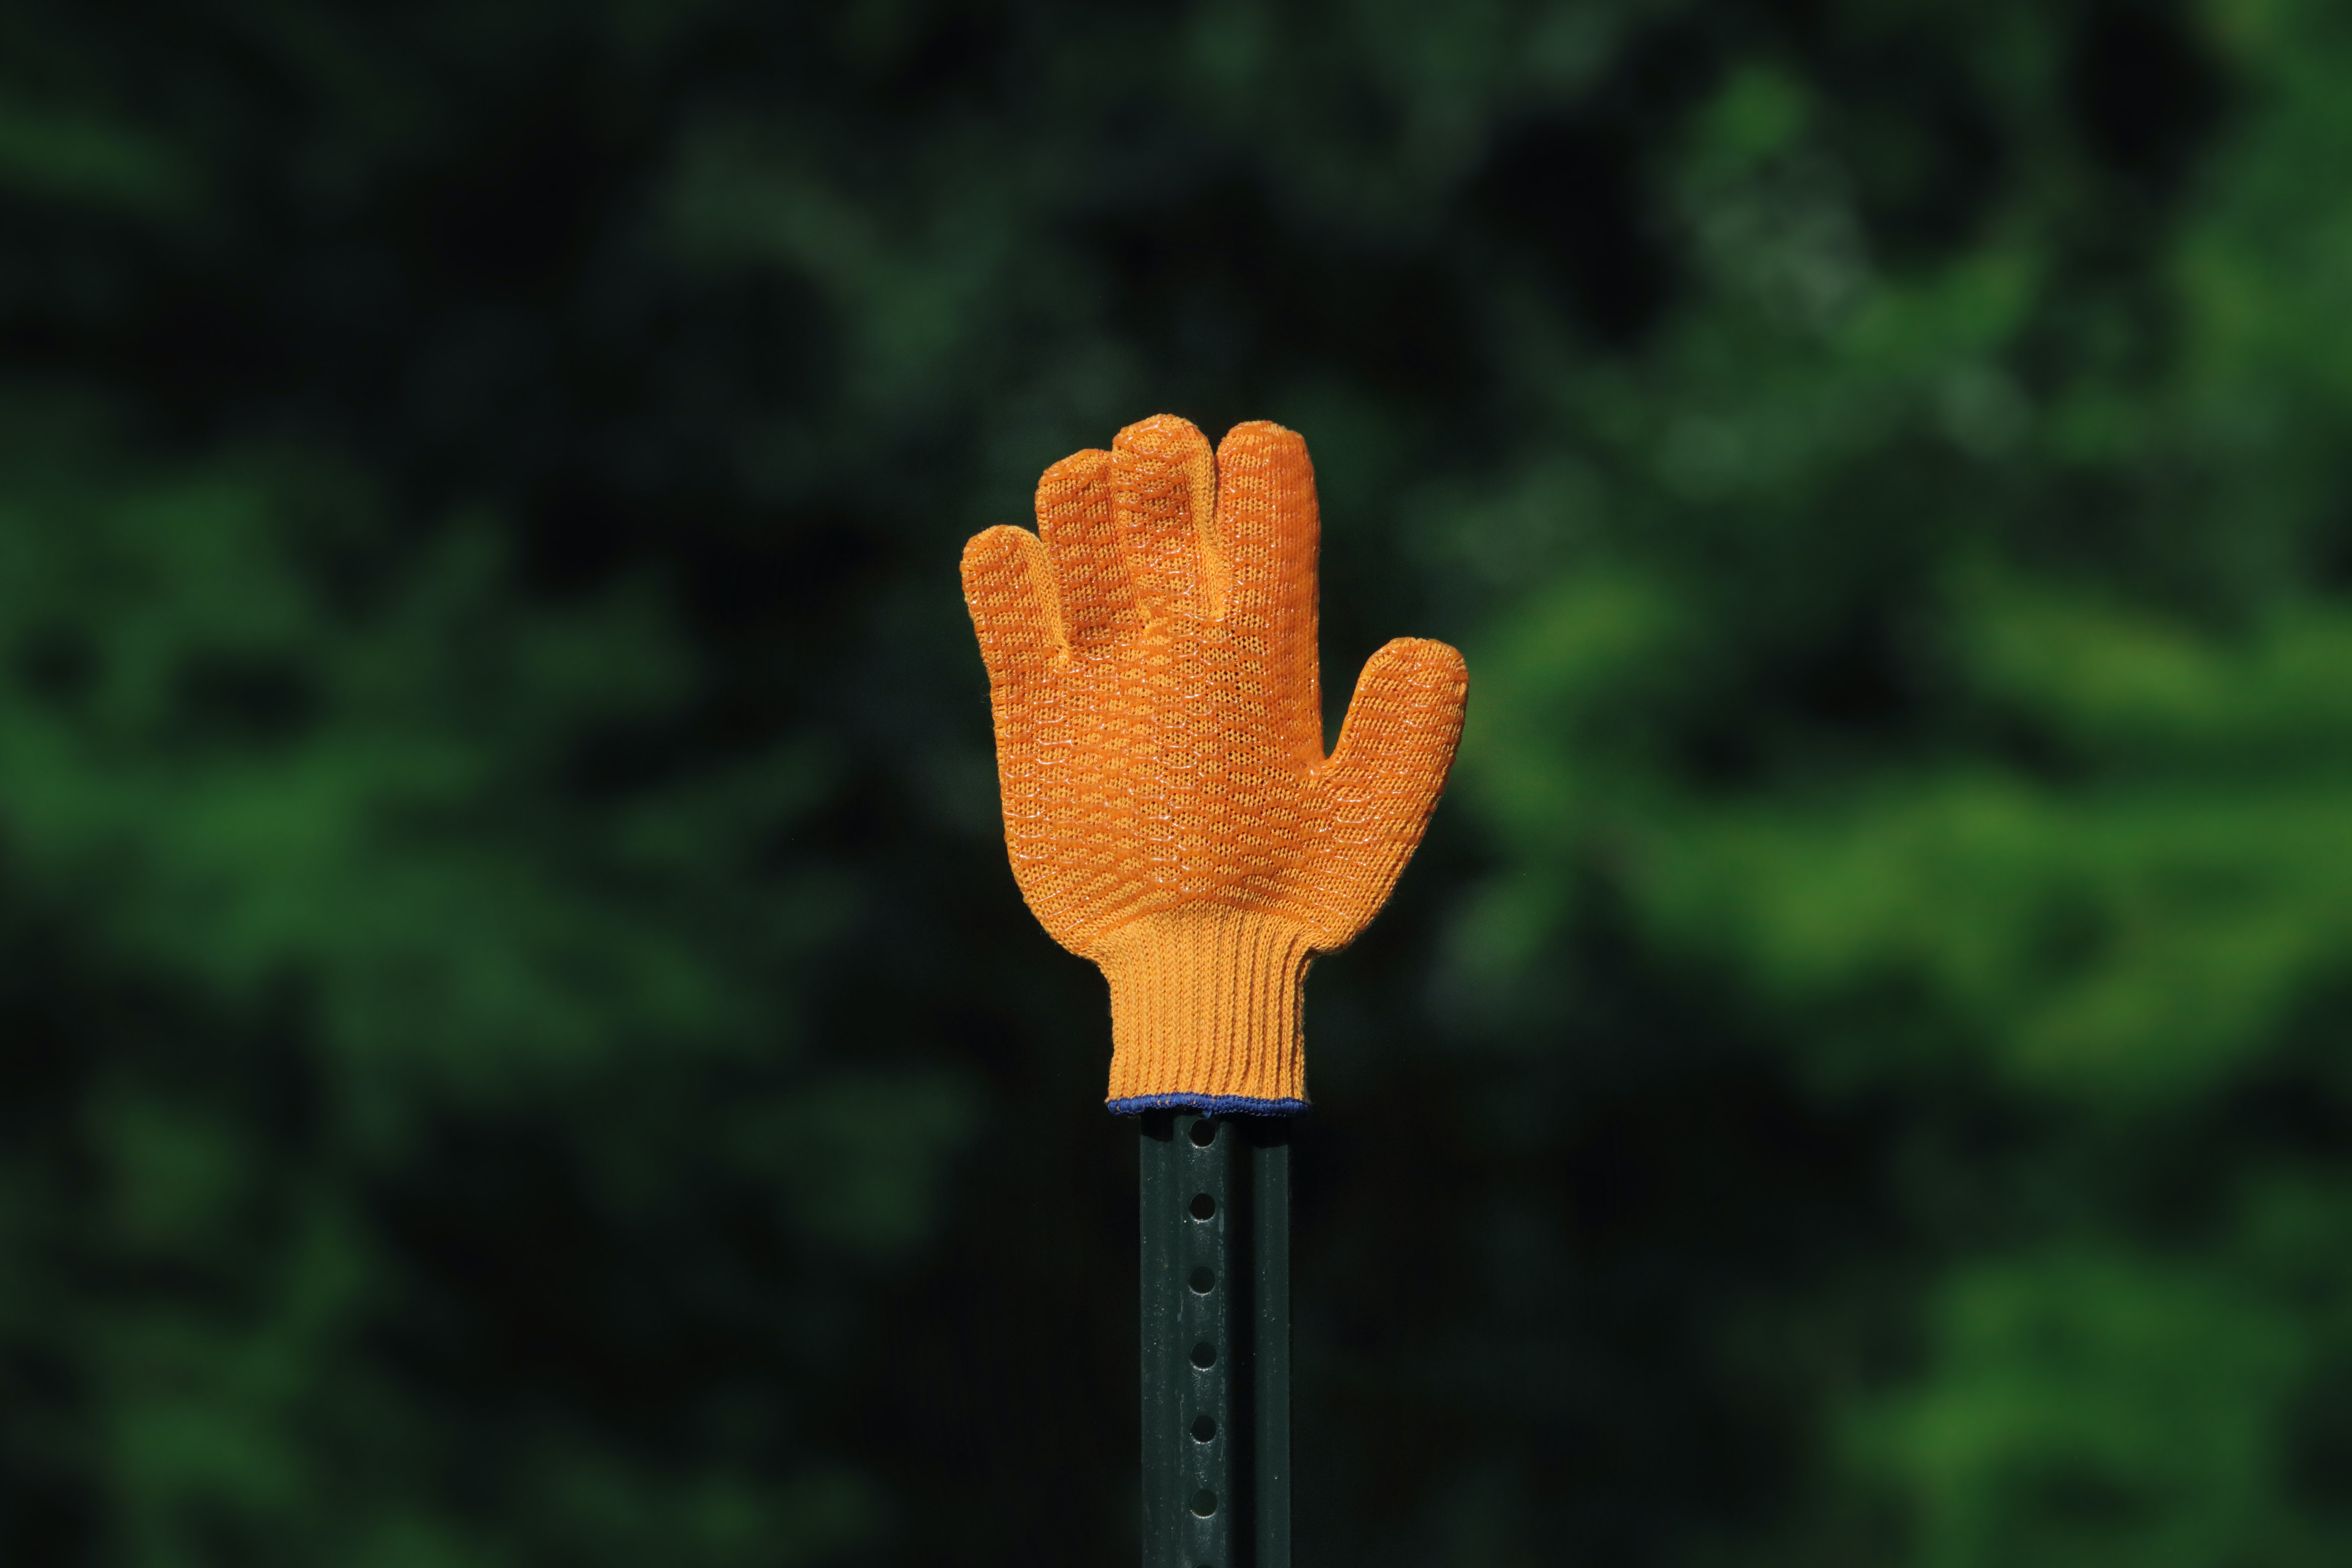 A child-sized orange-colored glove on a sign post